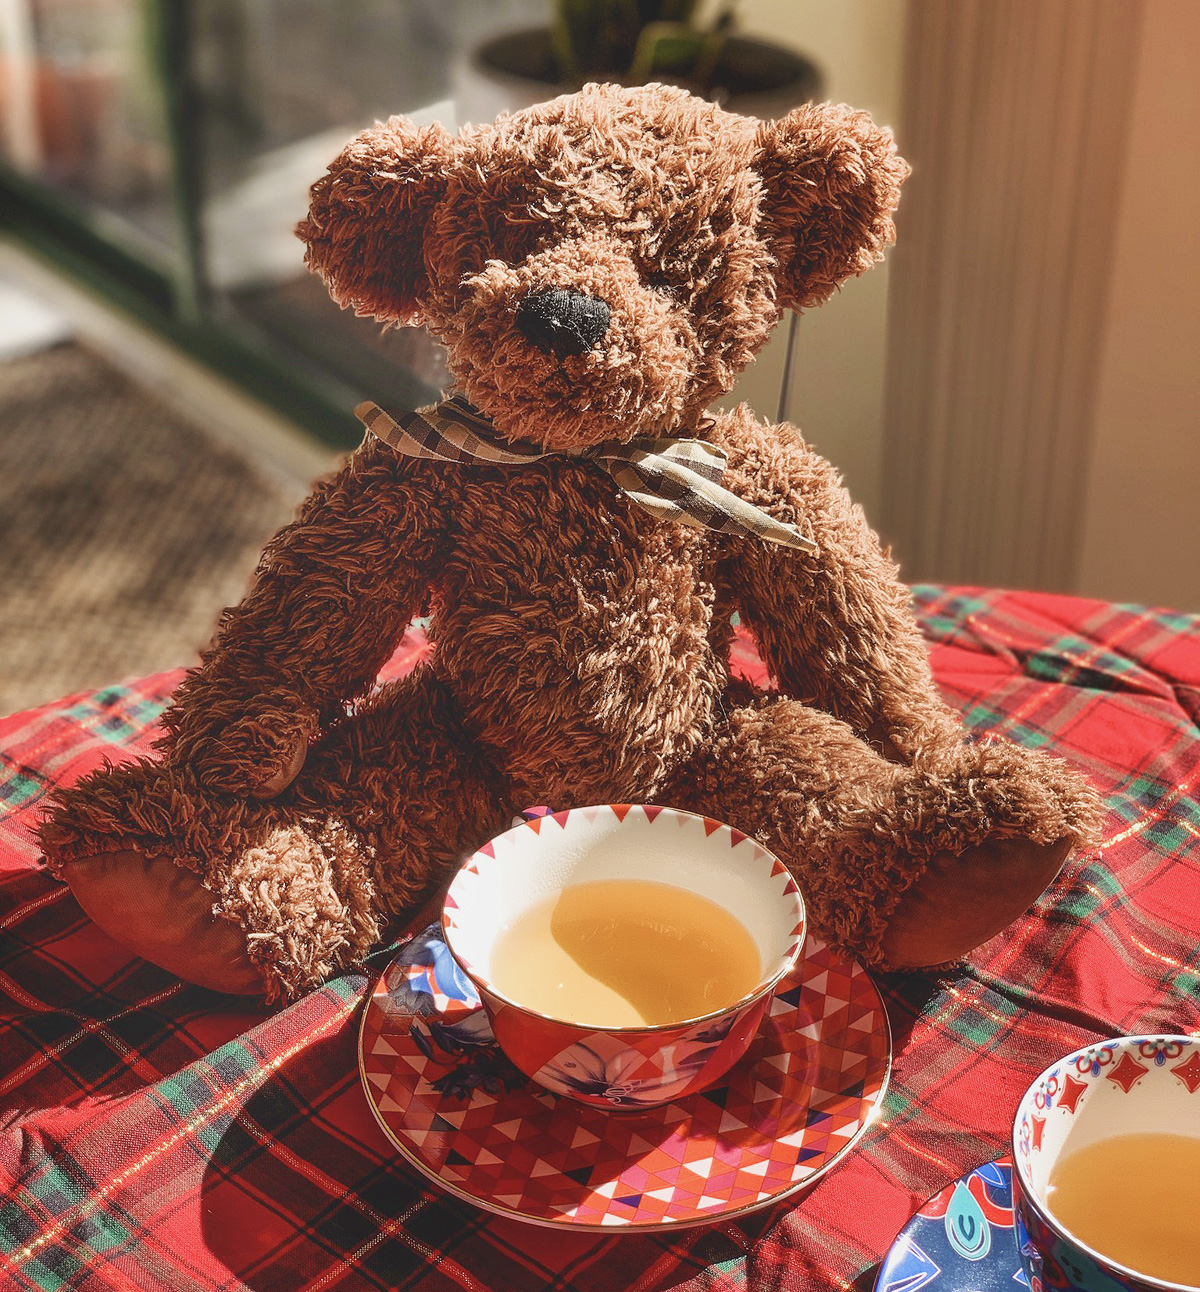 A brown teddy bear sits in front of a red patterned teacup on a red plaid blanket.